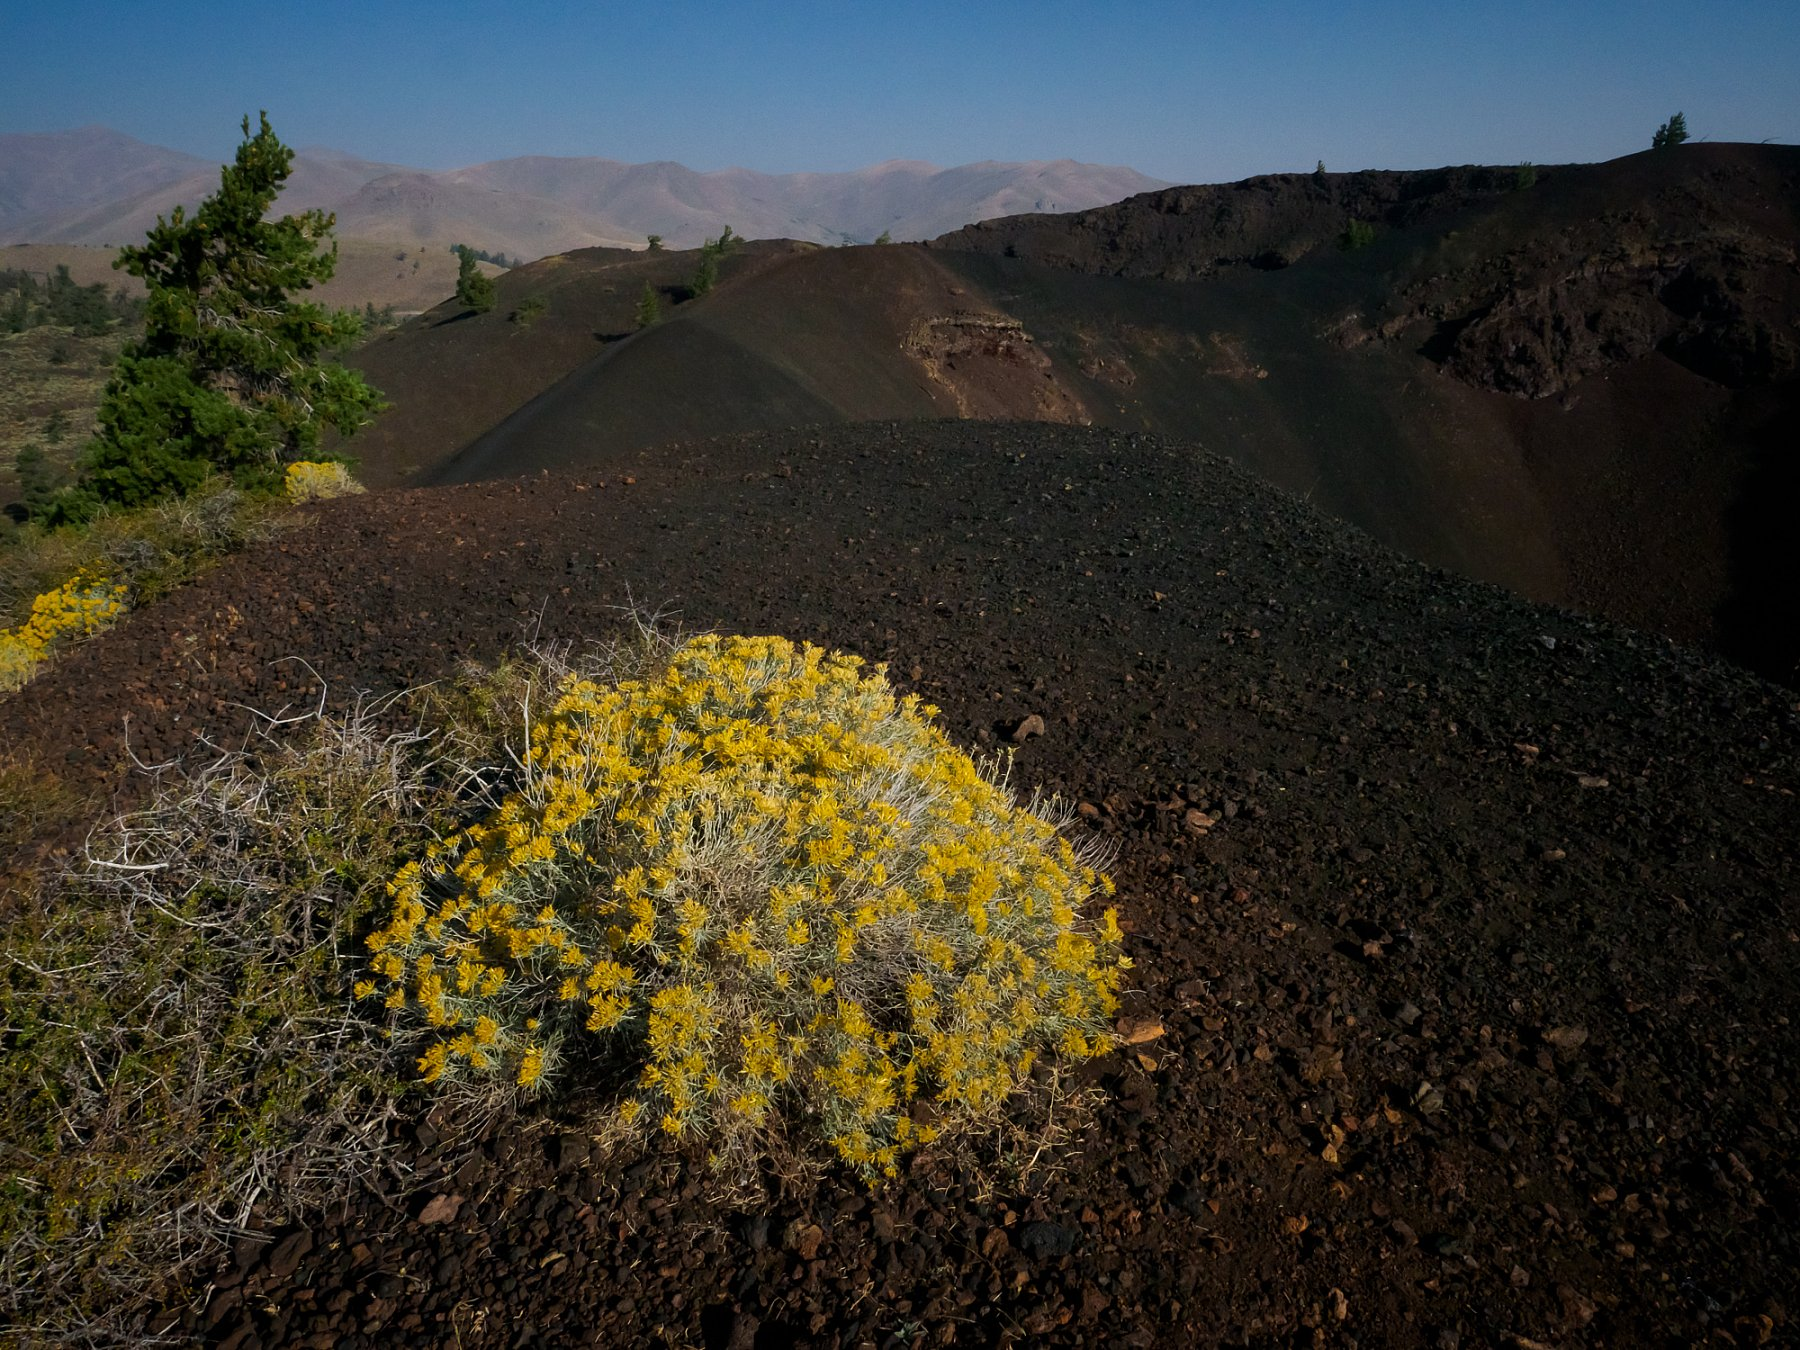 MLS-170911-CRATERS-9111954.jpg